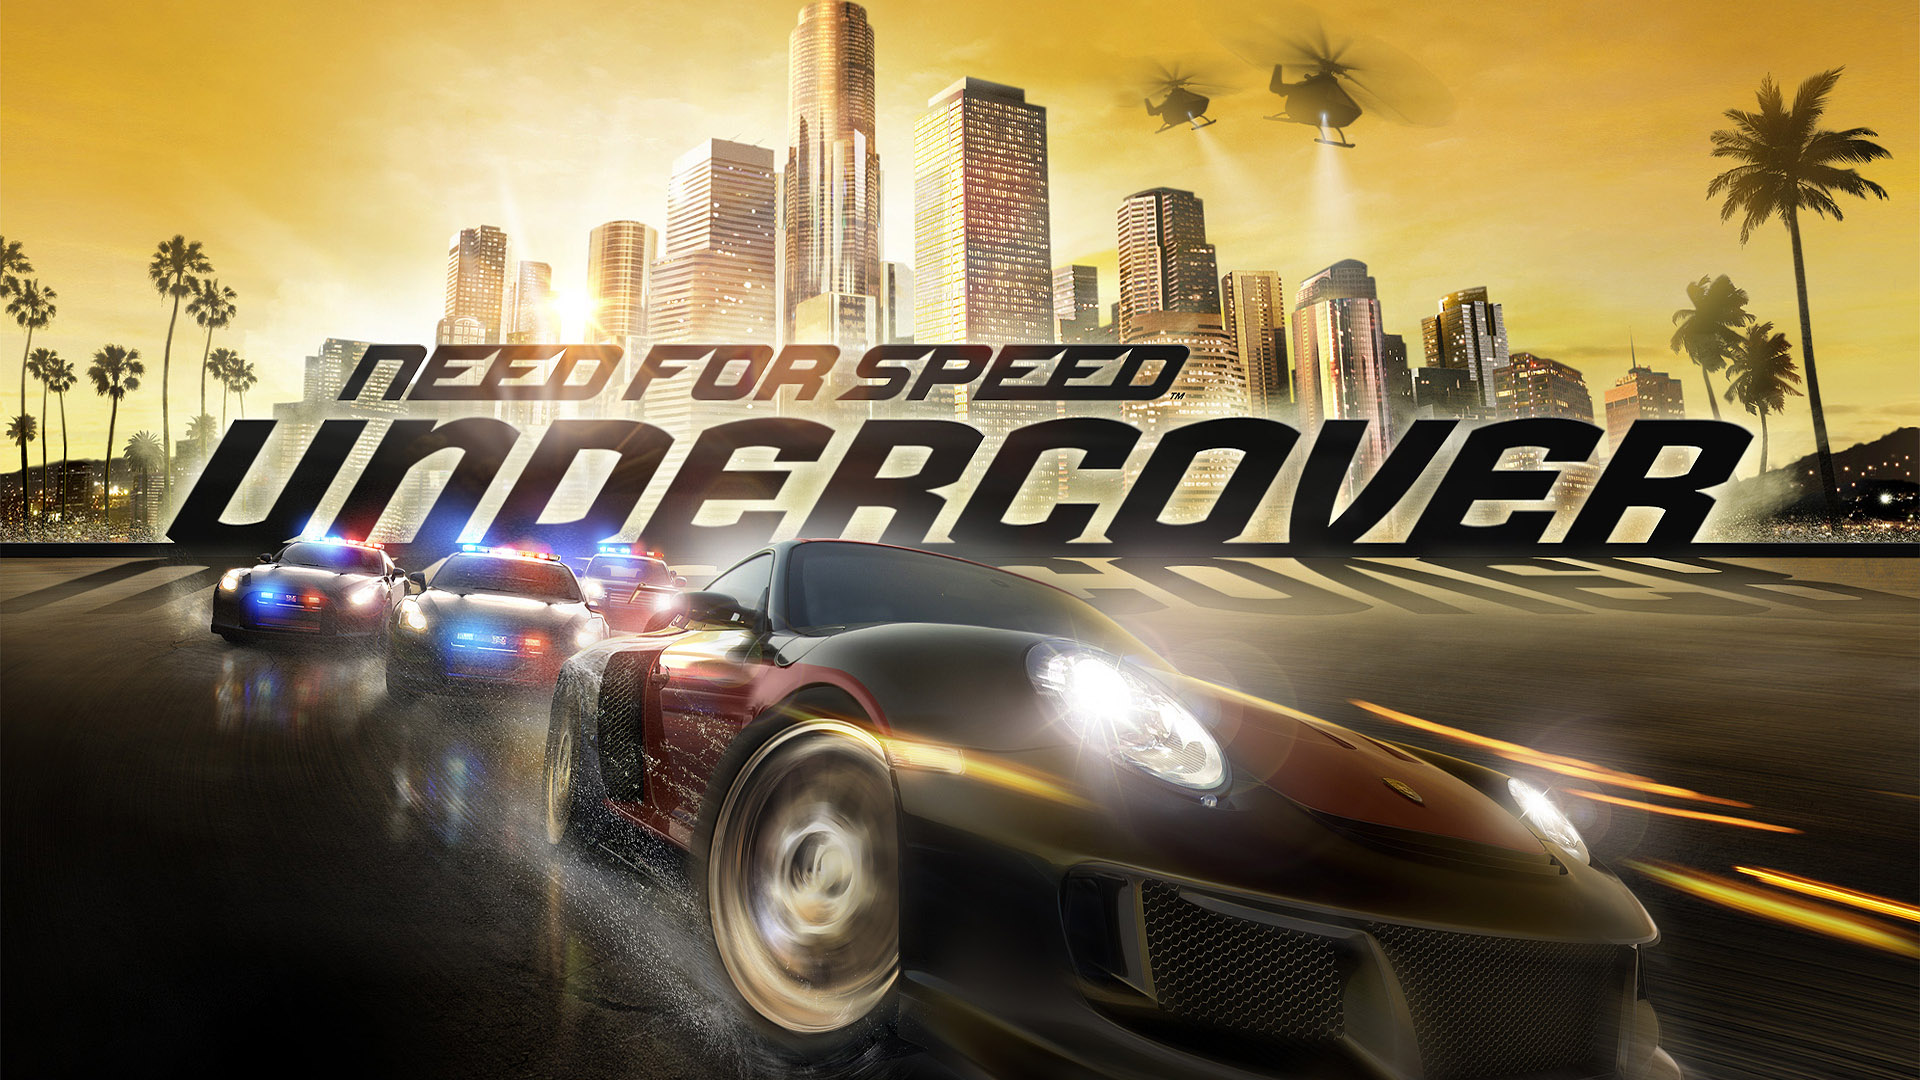 Car Wallpapers: Need For Speed